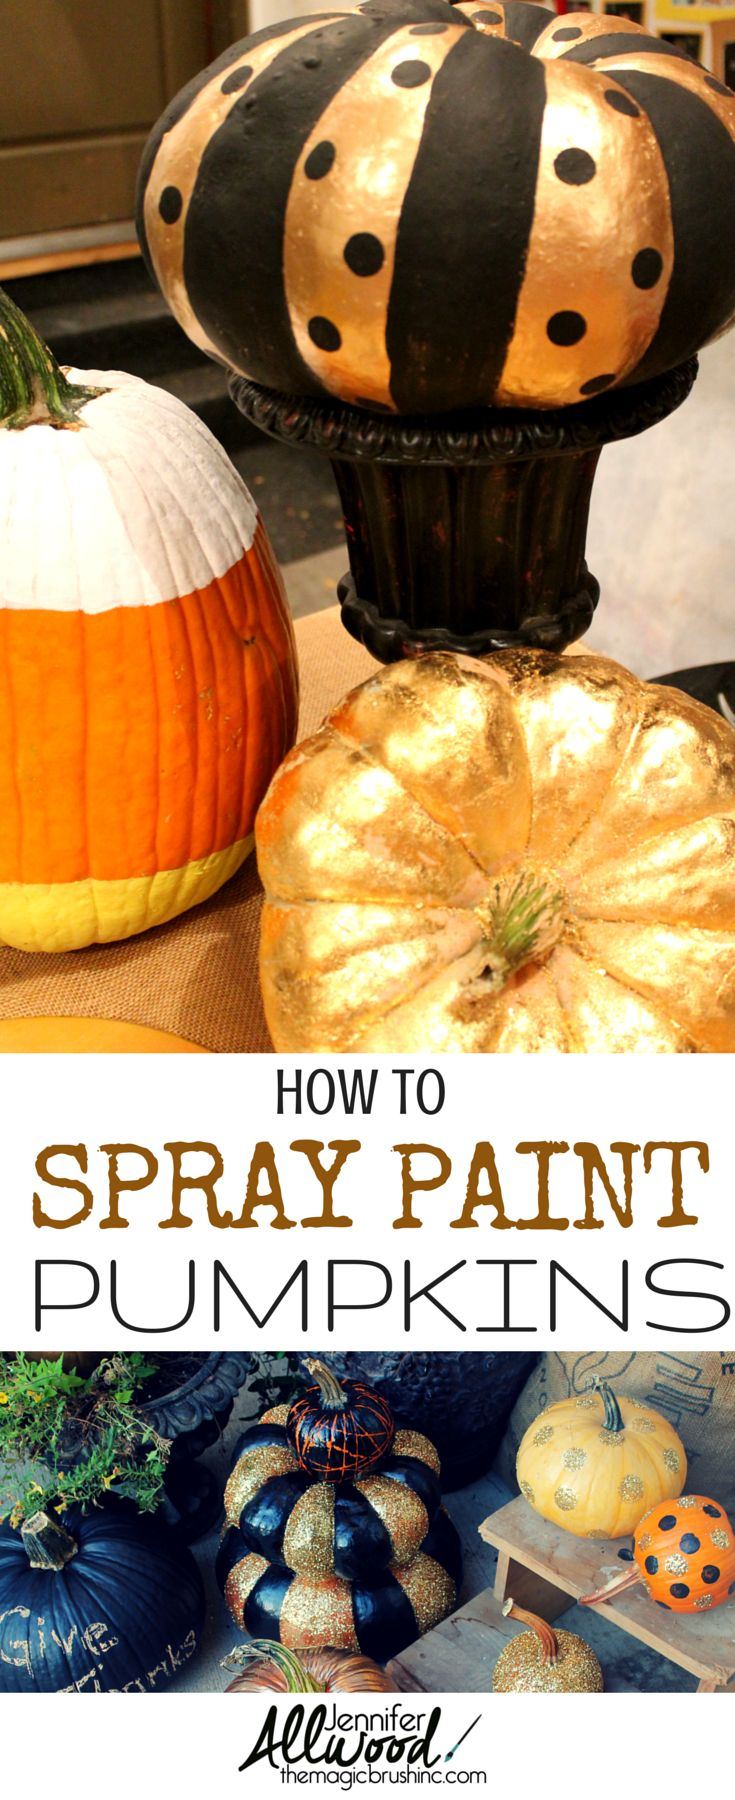 How to spray paint pumpkins as fall & Halloween decor. More DIY decoratng projects at theMagicBrushinc.com